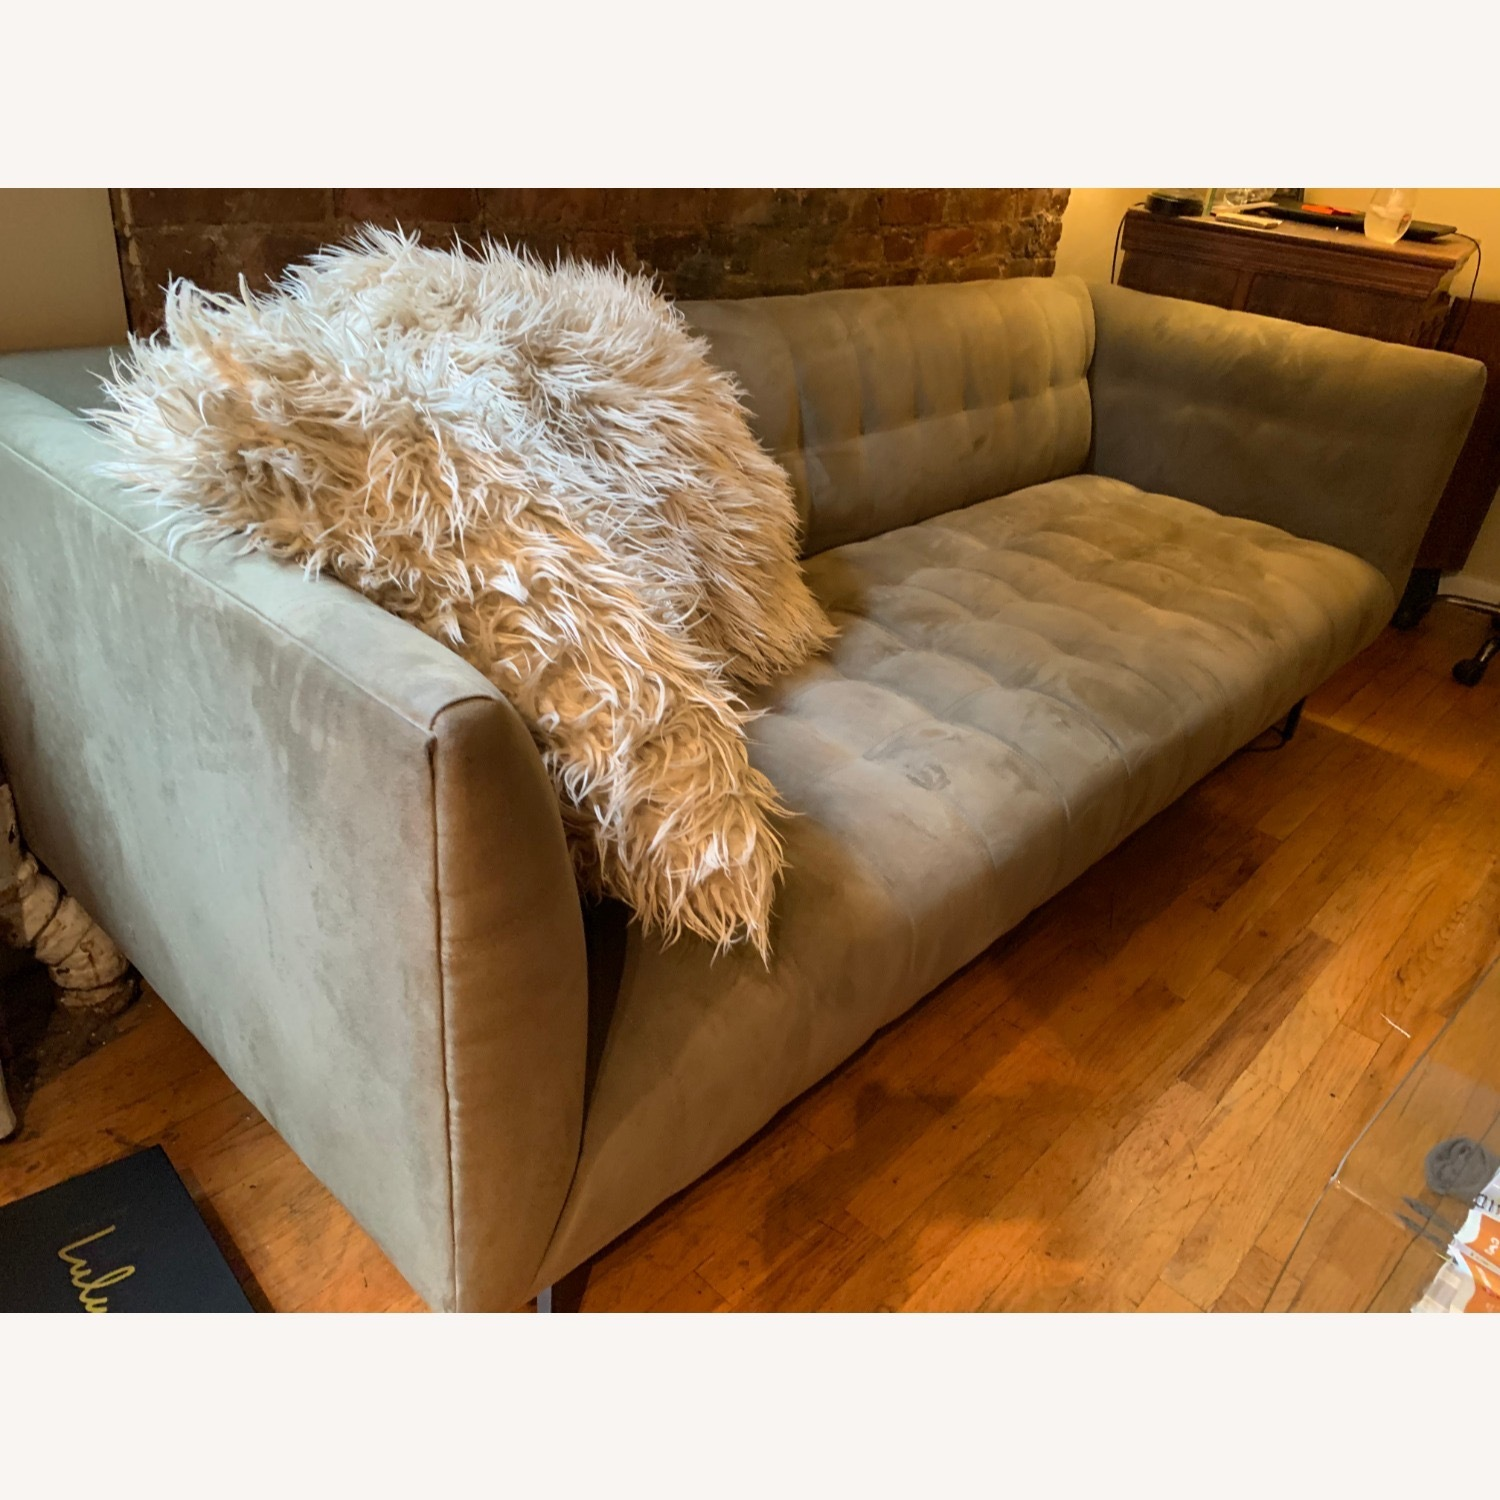 ABC Carpet & Home Microsuede Couch - image-3